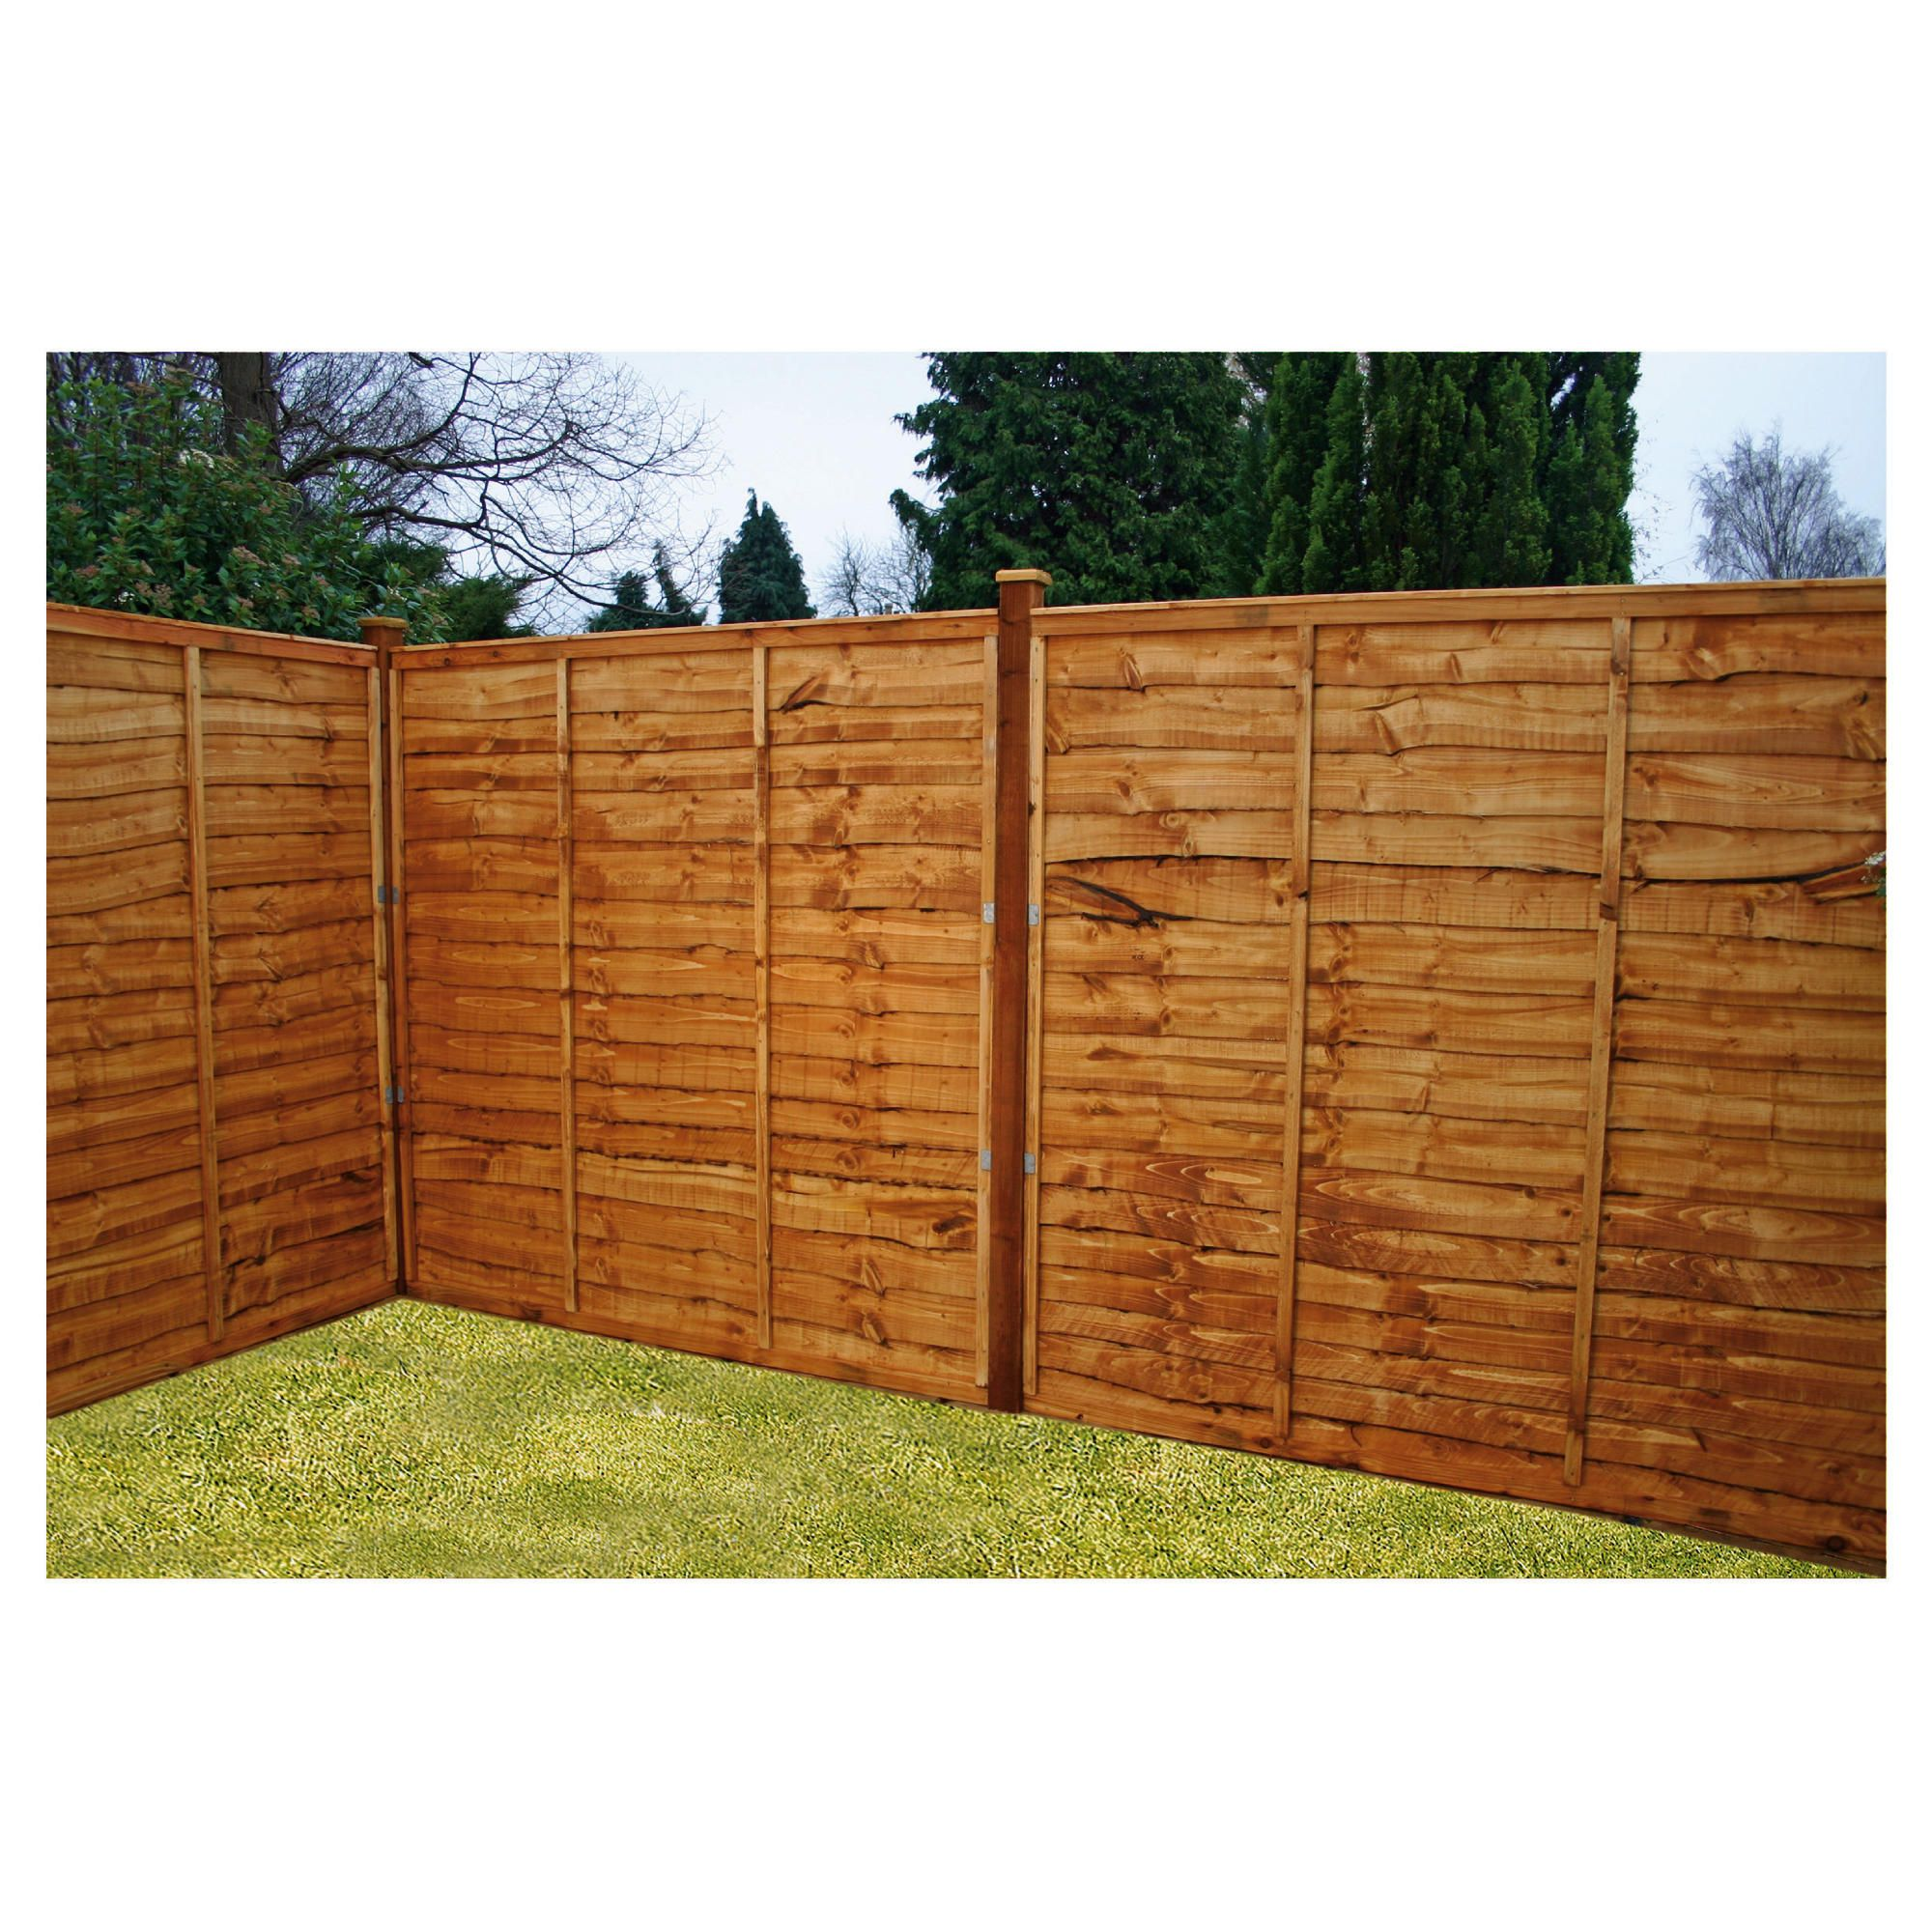 Mercia Waney Edge Horizontal Fencing X7 at Tesco Direct